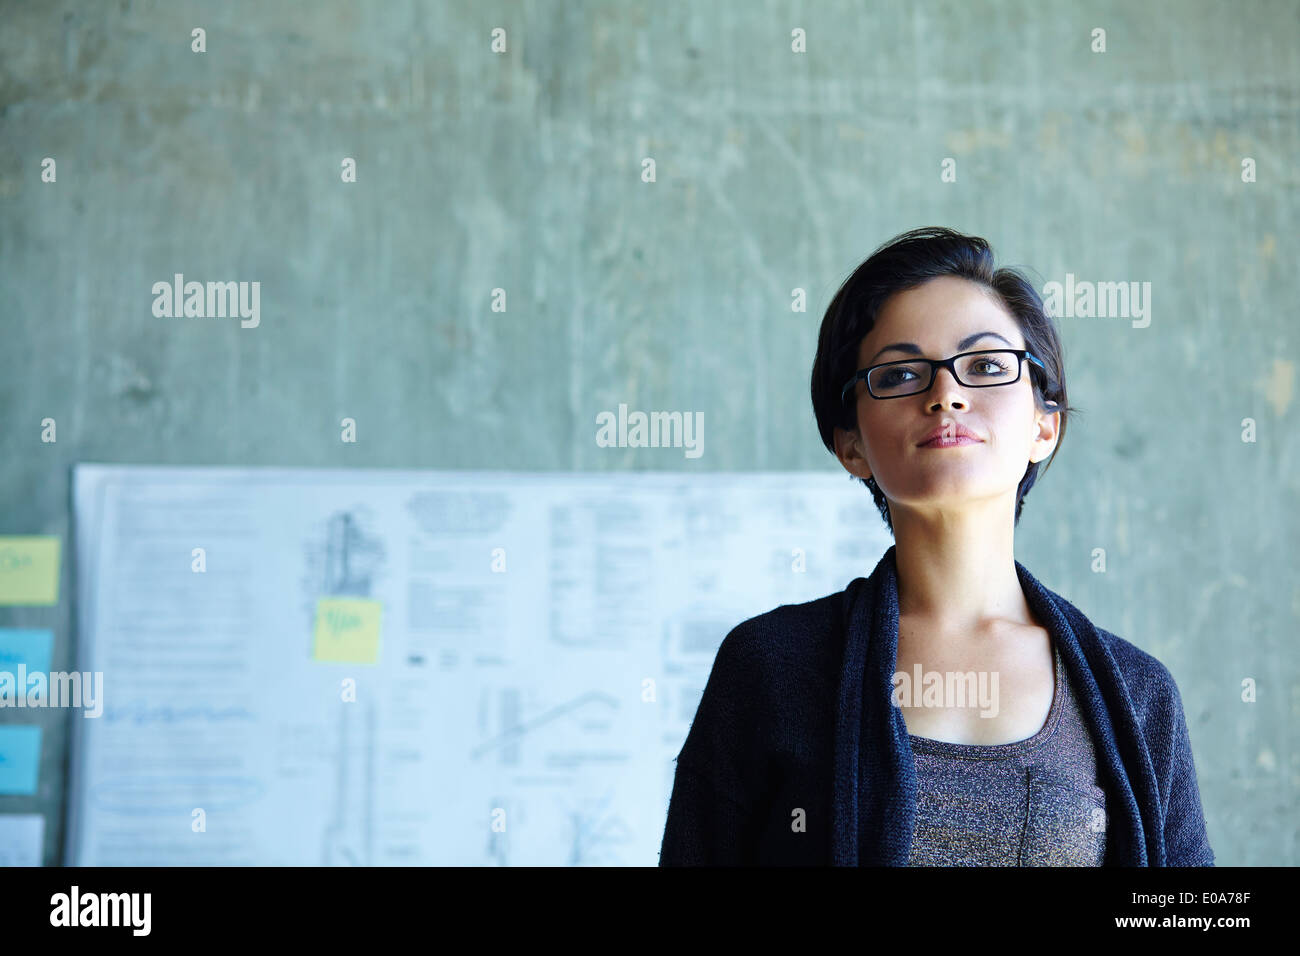 Portrait of serious young businesswoman in office - Stock Image